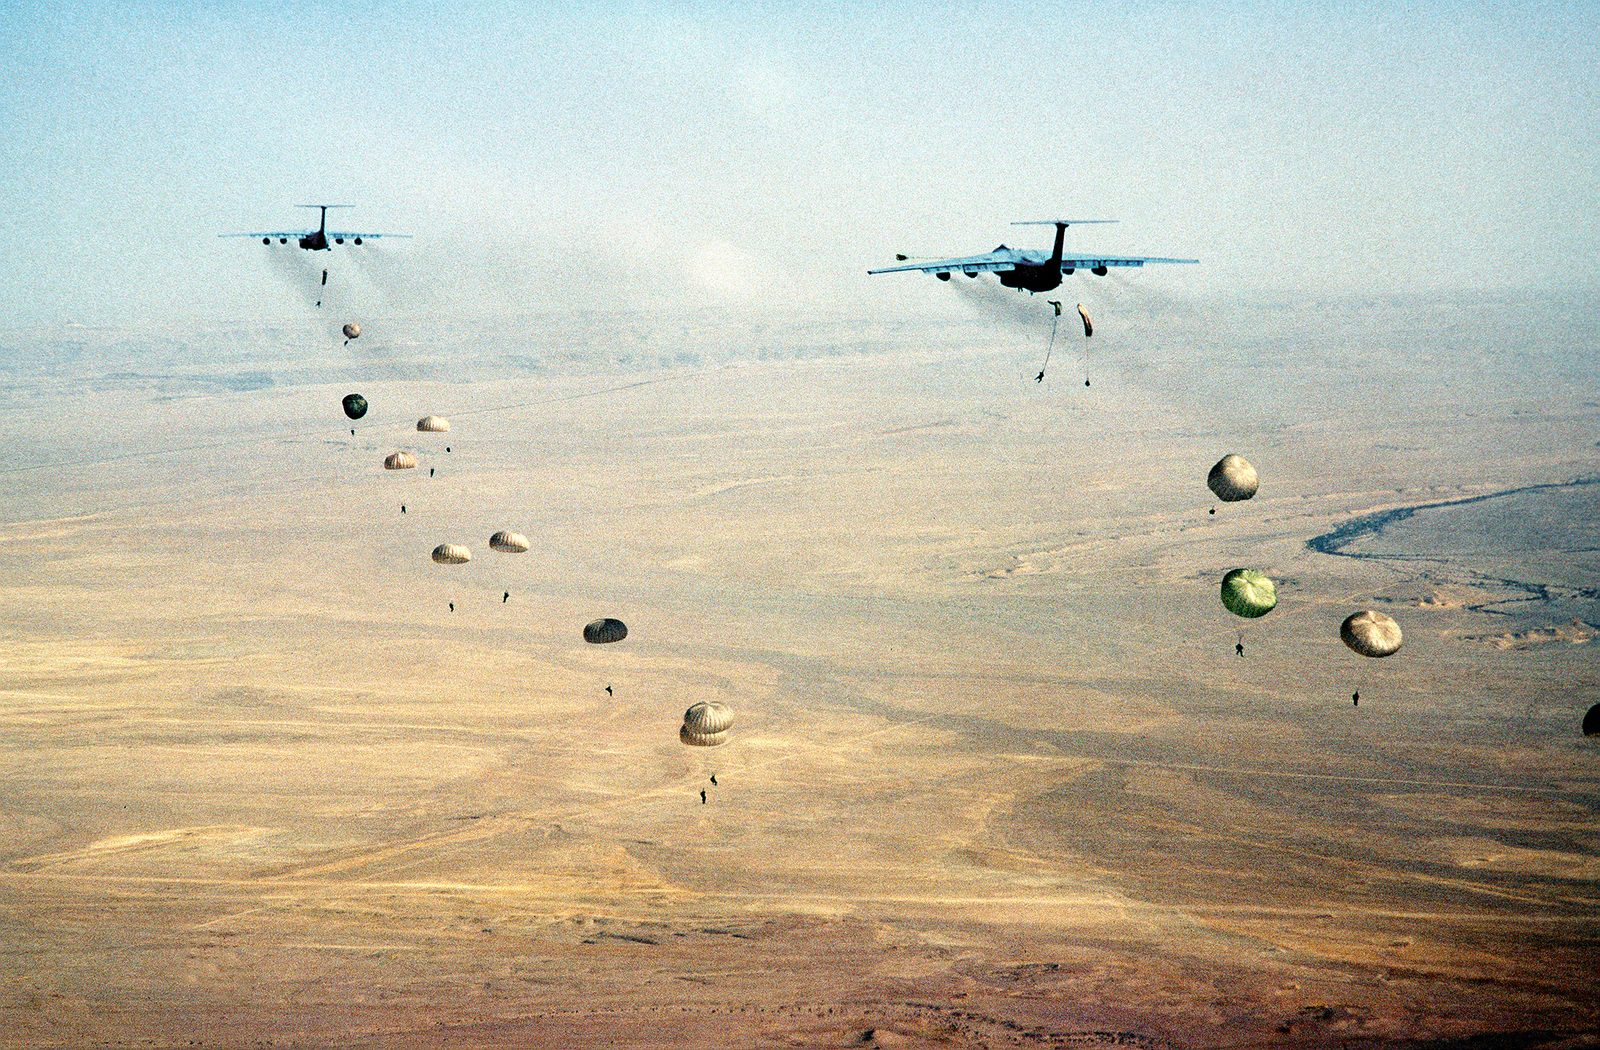 Egyptian Army paratroopers perform static-line jumps out the sides of two C-141B Starlifter aircraft from the 62nd Air Wing, McChord Air Force Base, over the WADI drop zone in Egypt, during the joint United States and Egyptian military exercise